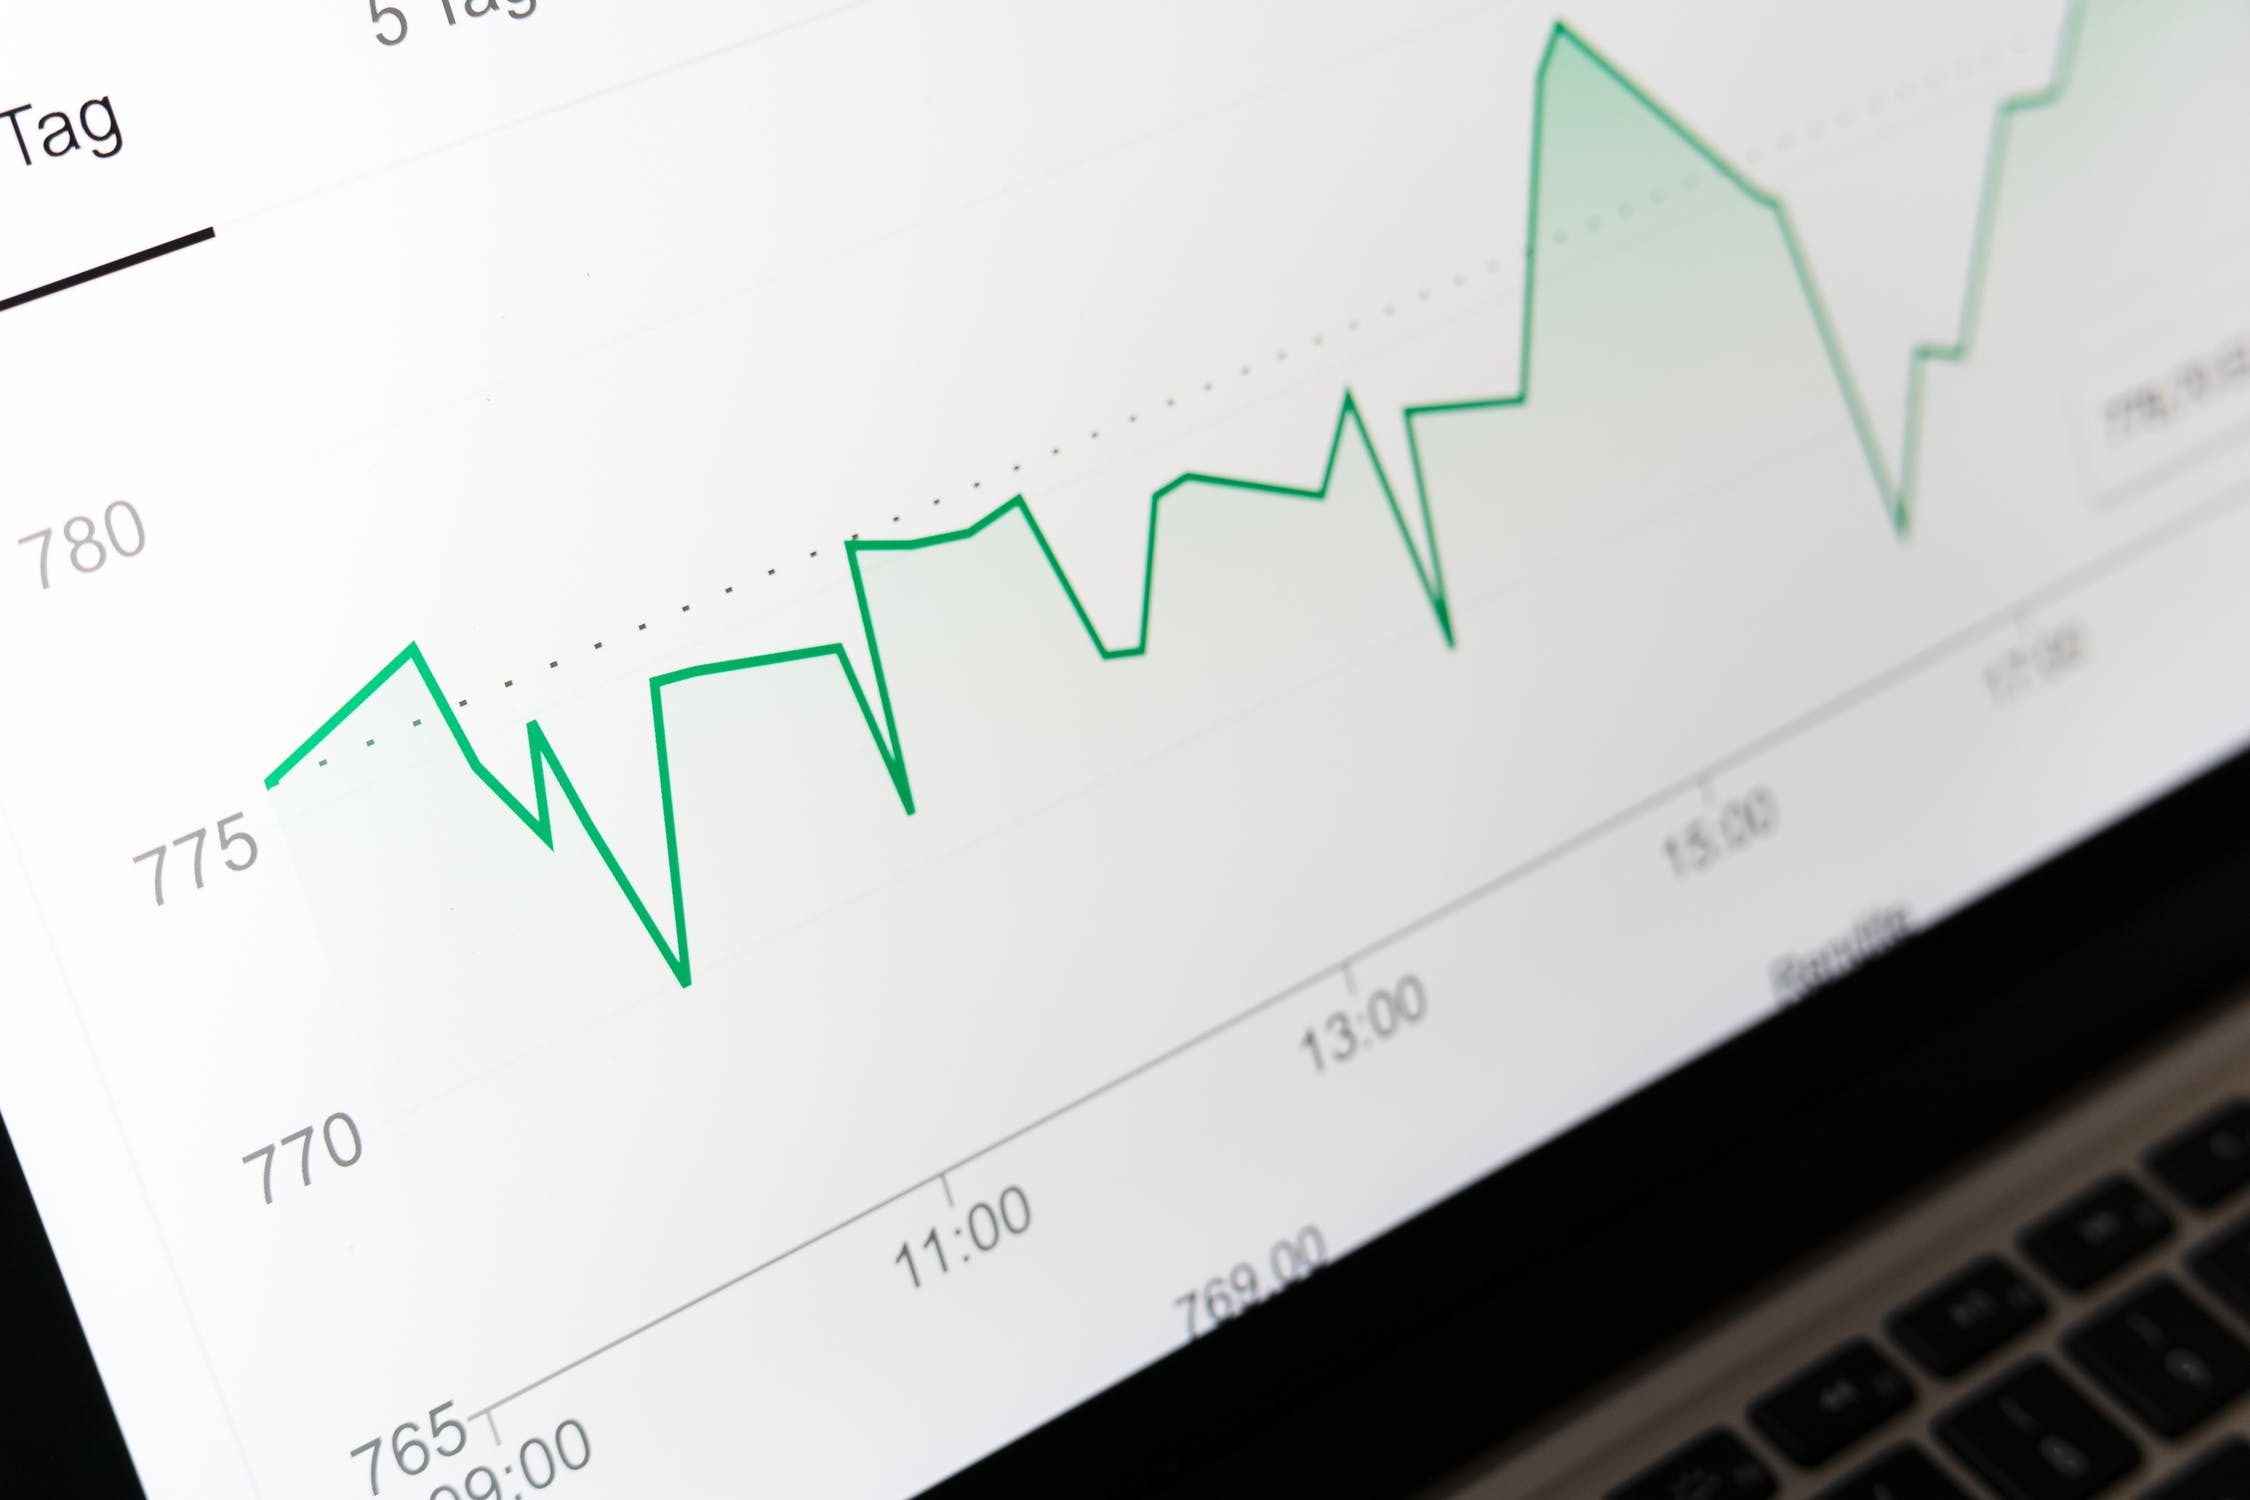 competitive pricing analysis